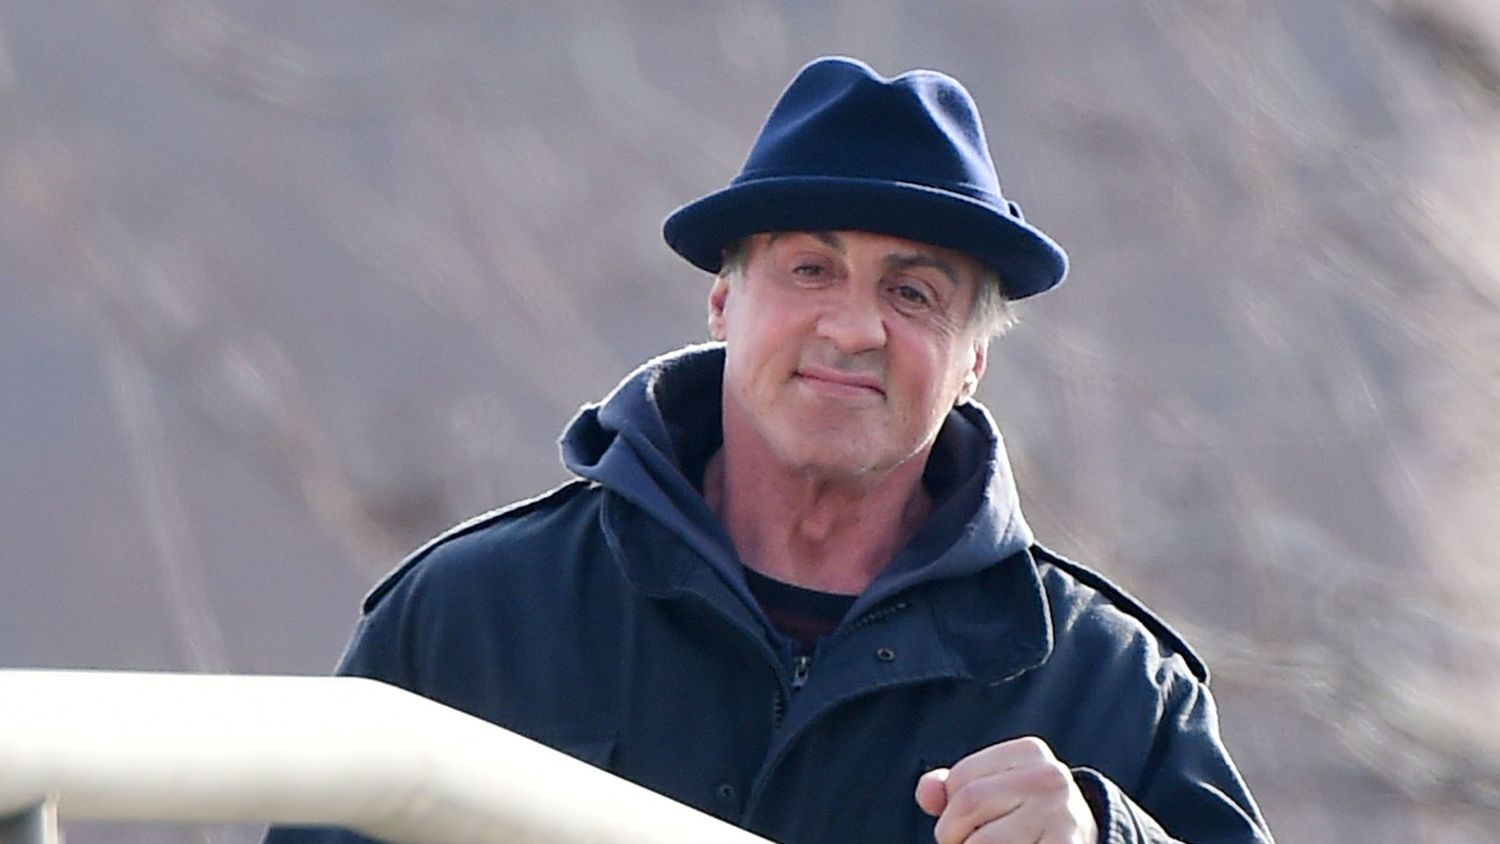 Sylvester Stallone Starring in First Television Series